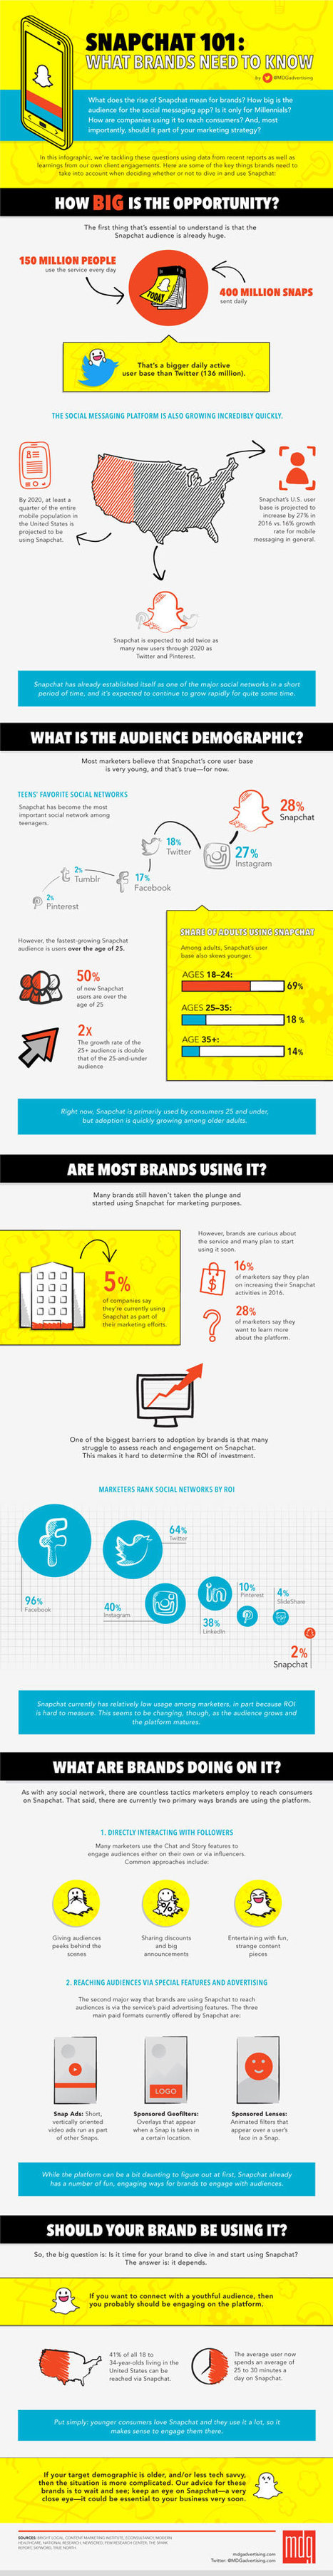 Snapchat 101: What Brands Need to Know #Infographic #snapchatmarketing | The Twinkie Awards | Scoop.it